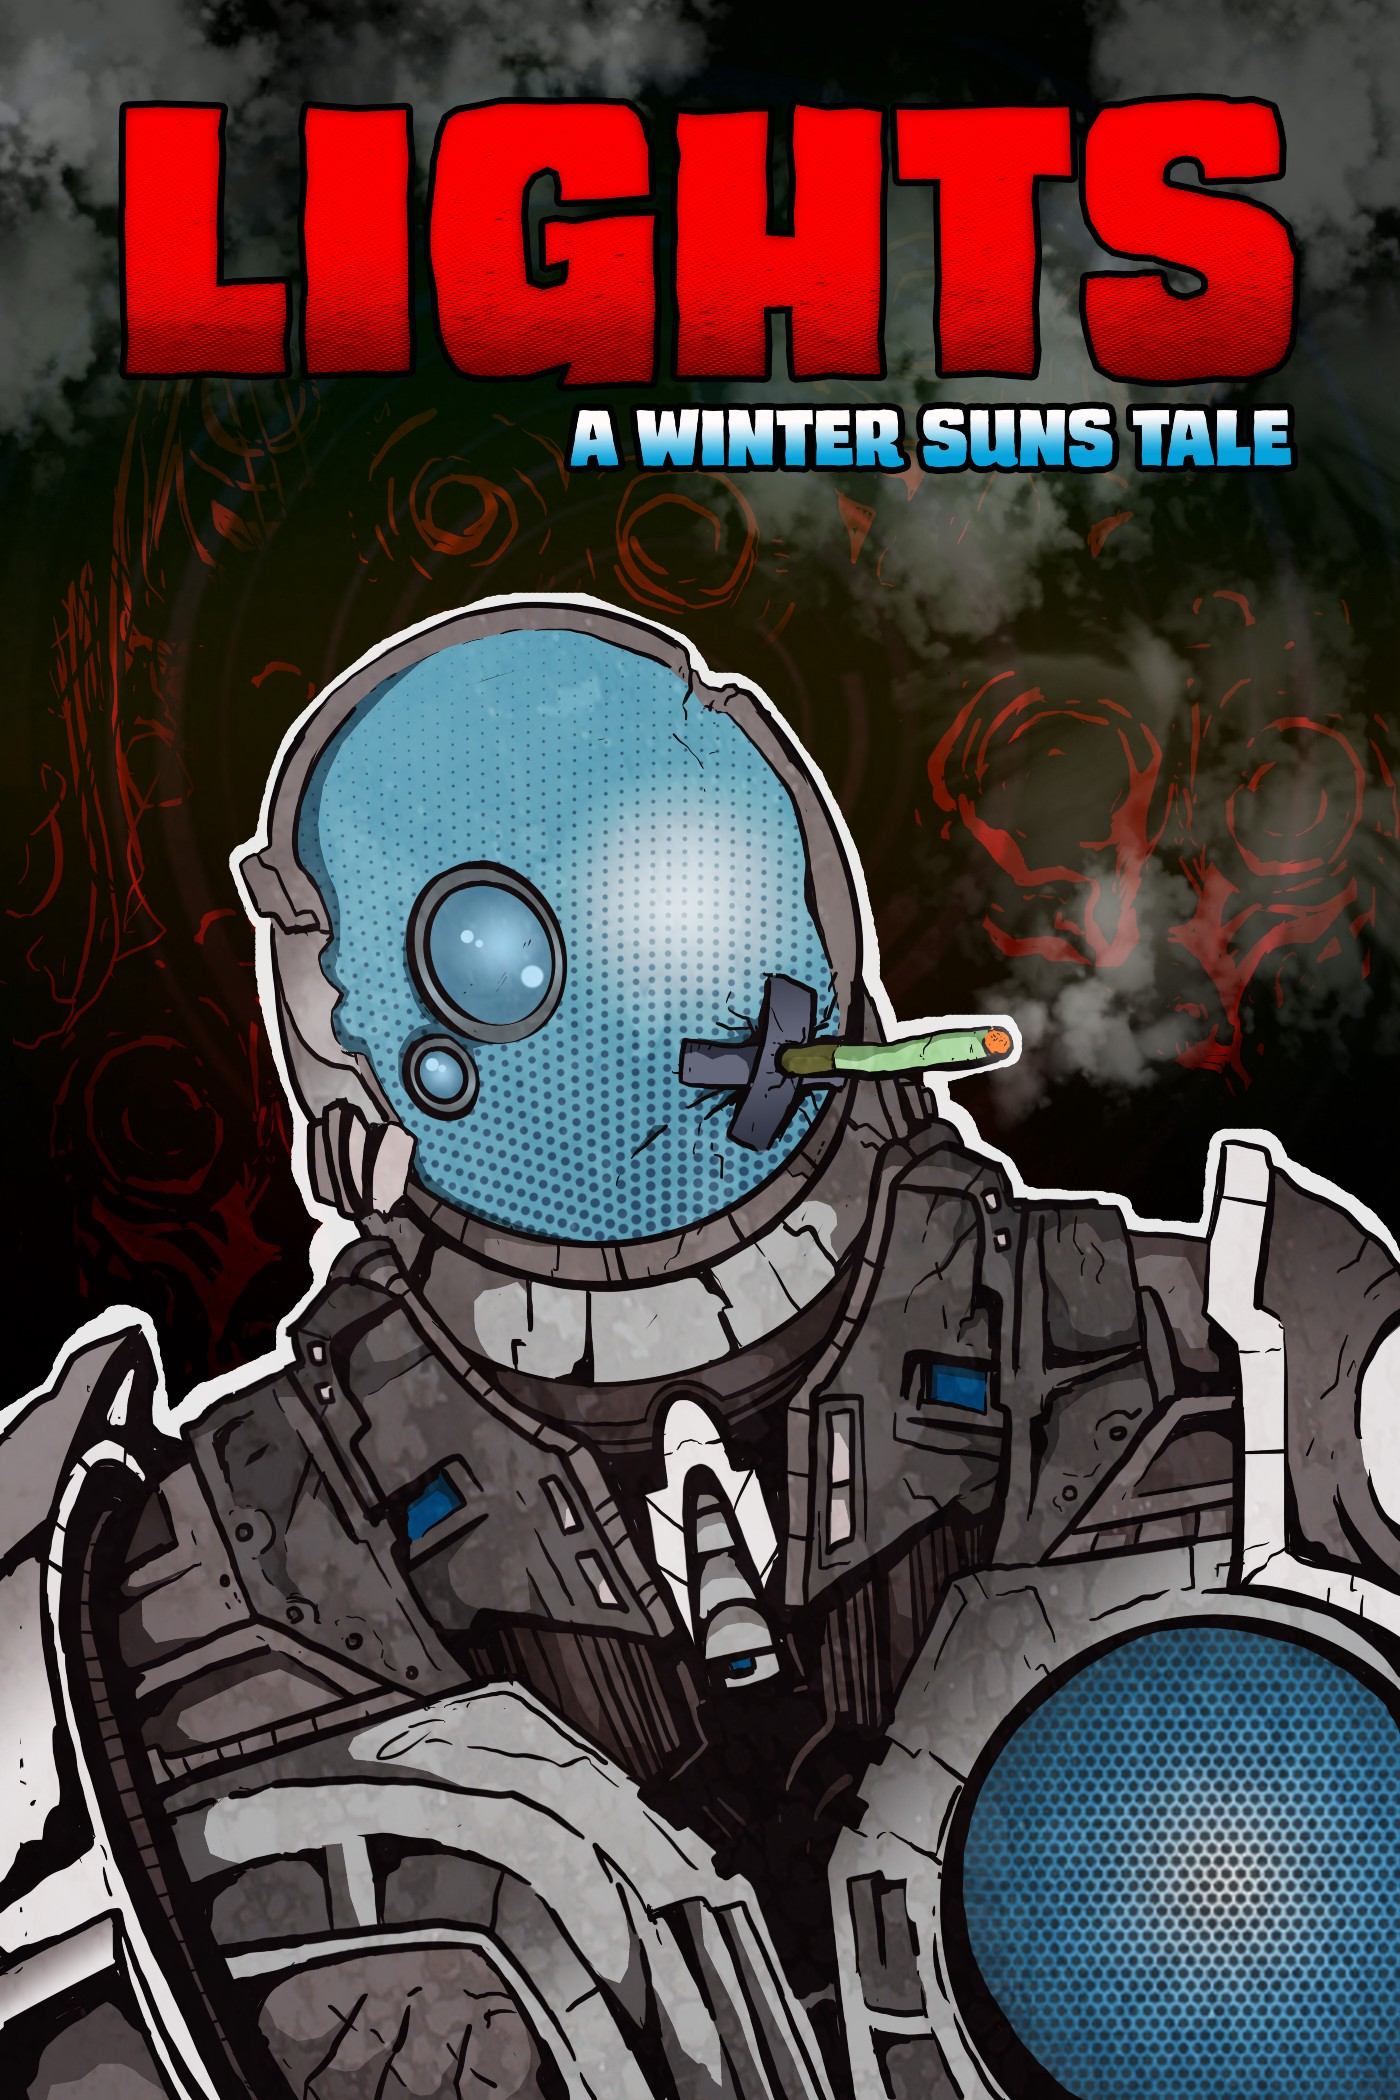 Lights—A Winter Suns tale cover of the comic.